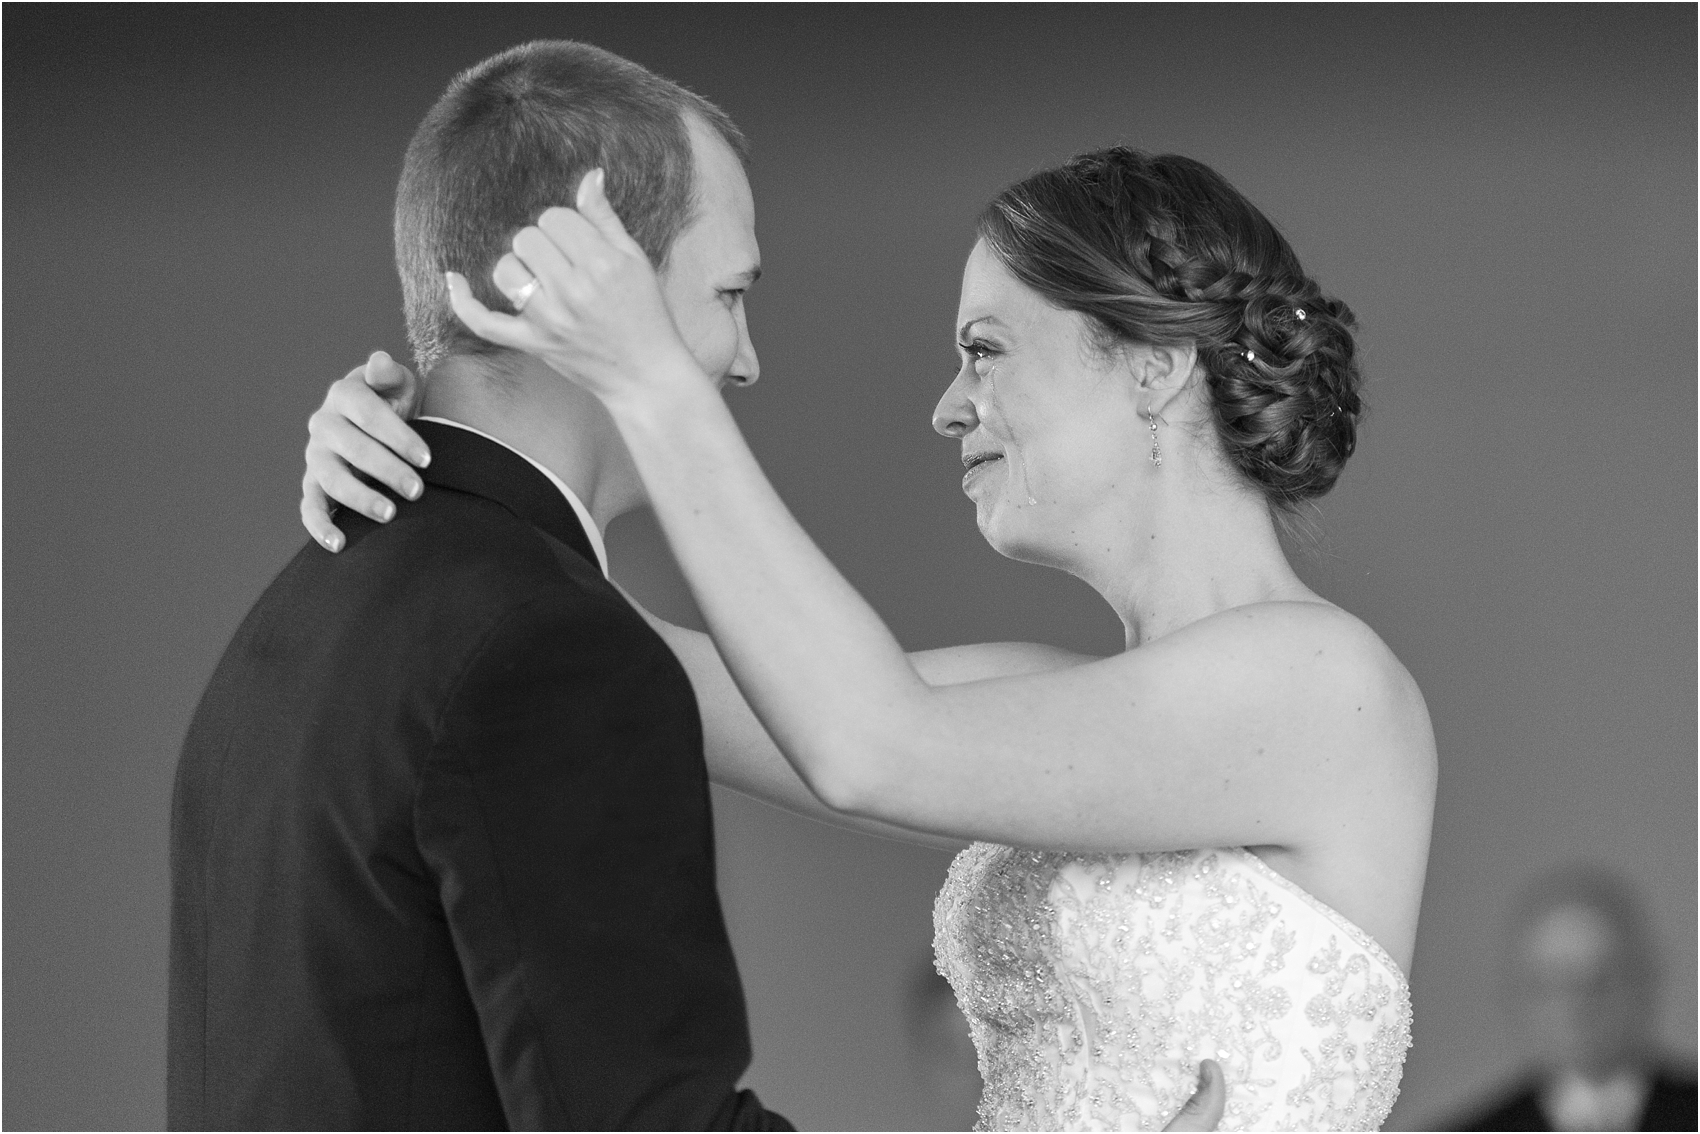 emotional-candid-romantic-wedding-photos-in-detroit-chicago-northern-michigan-by-courtney-carolyn-photography_0009.jpg